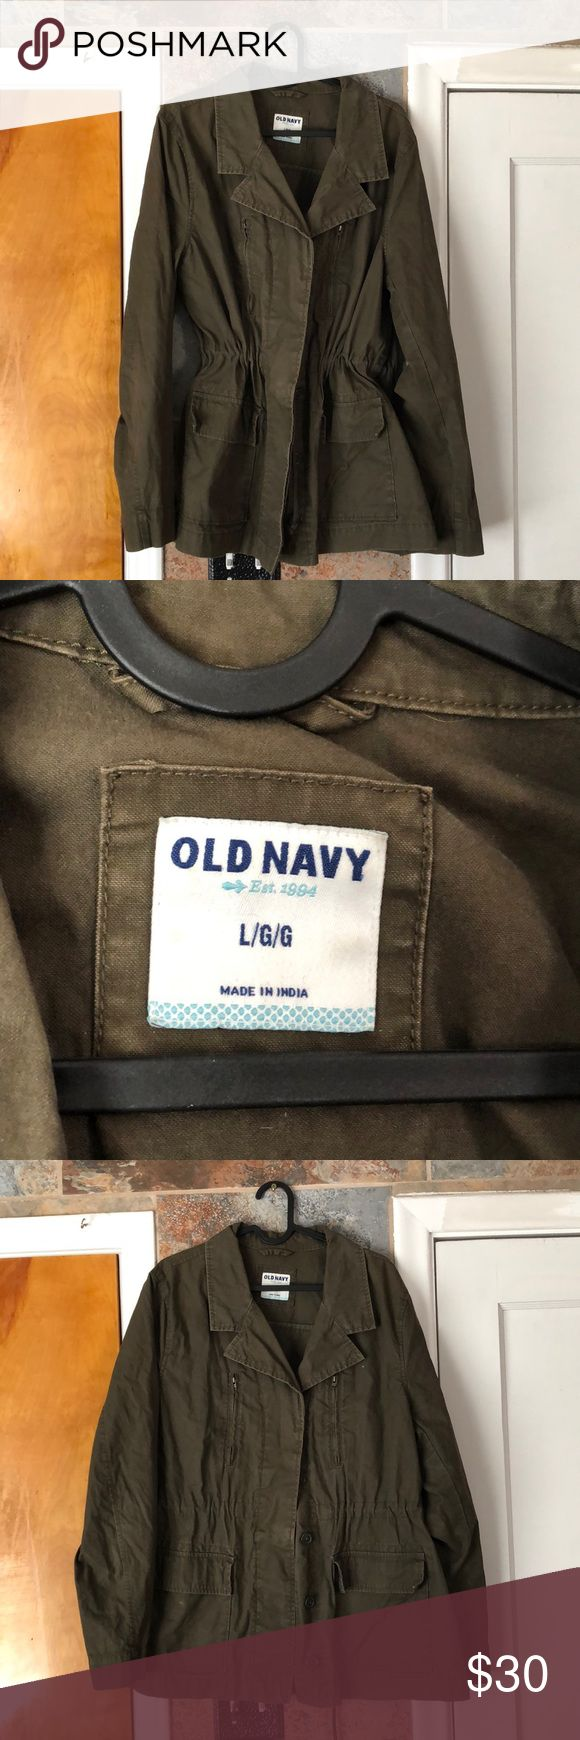 Old Navy Green Army Jacket Army green jacket, Army